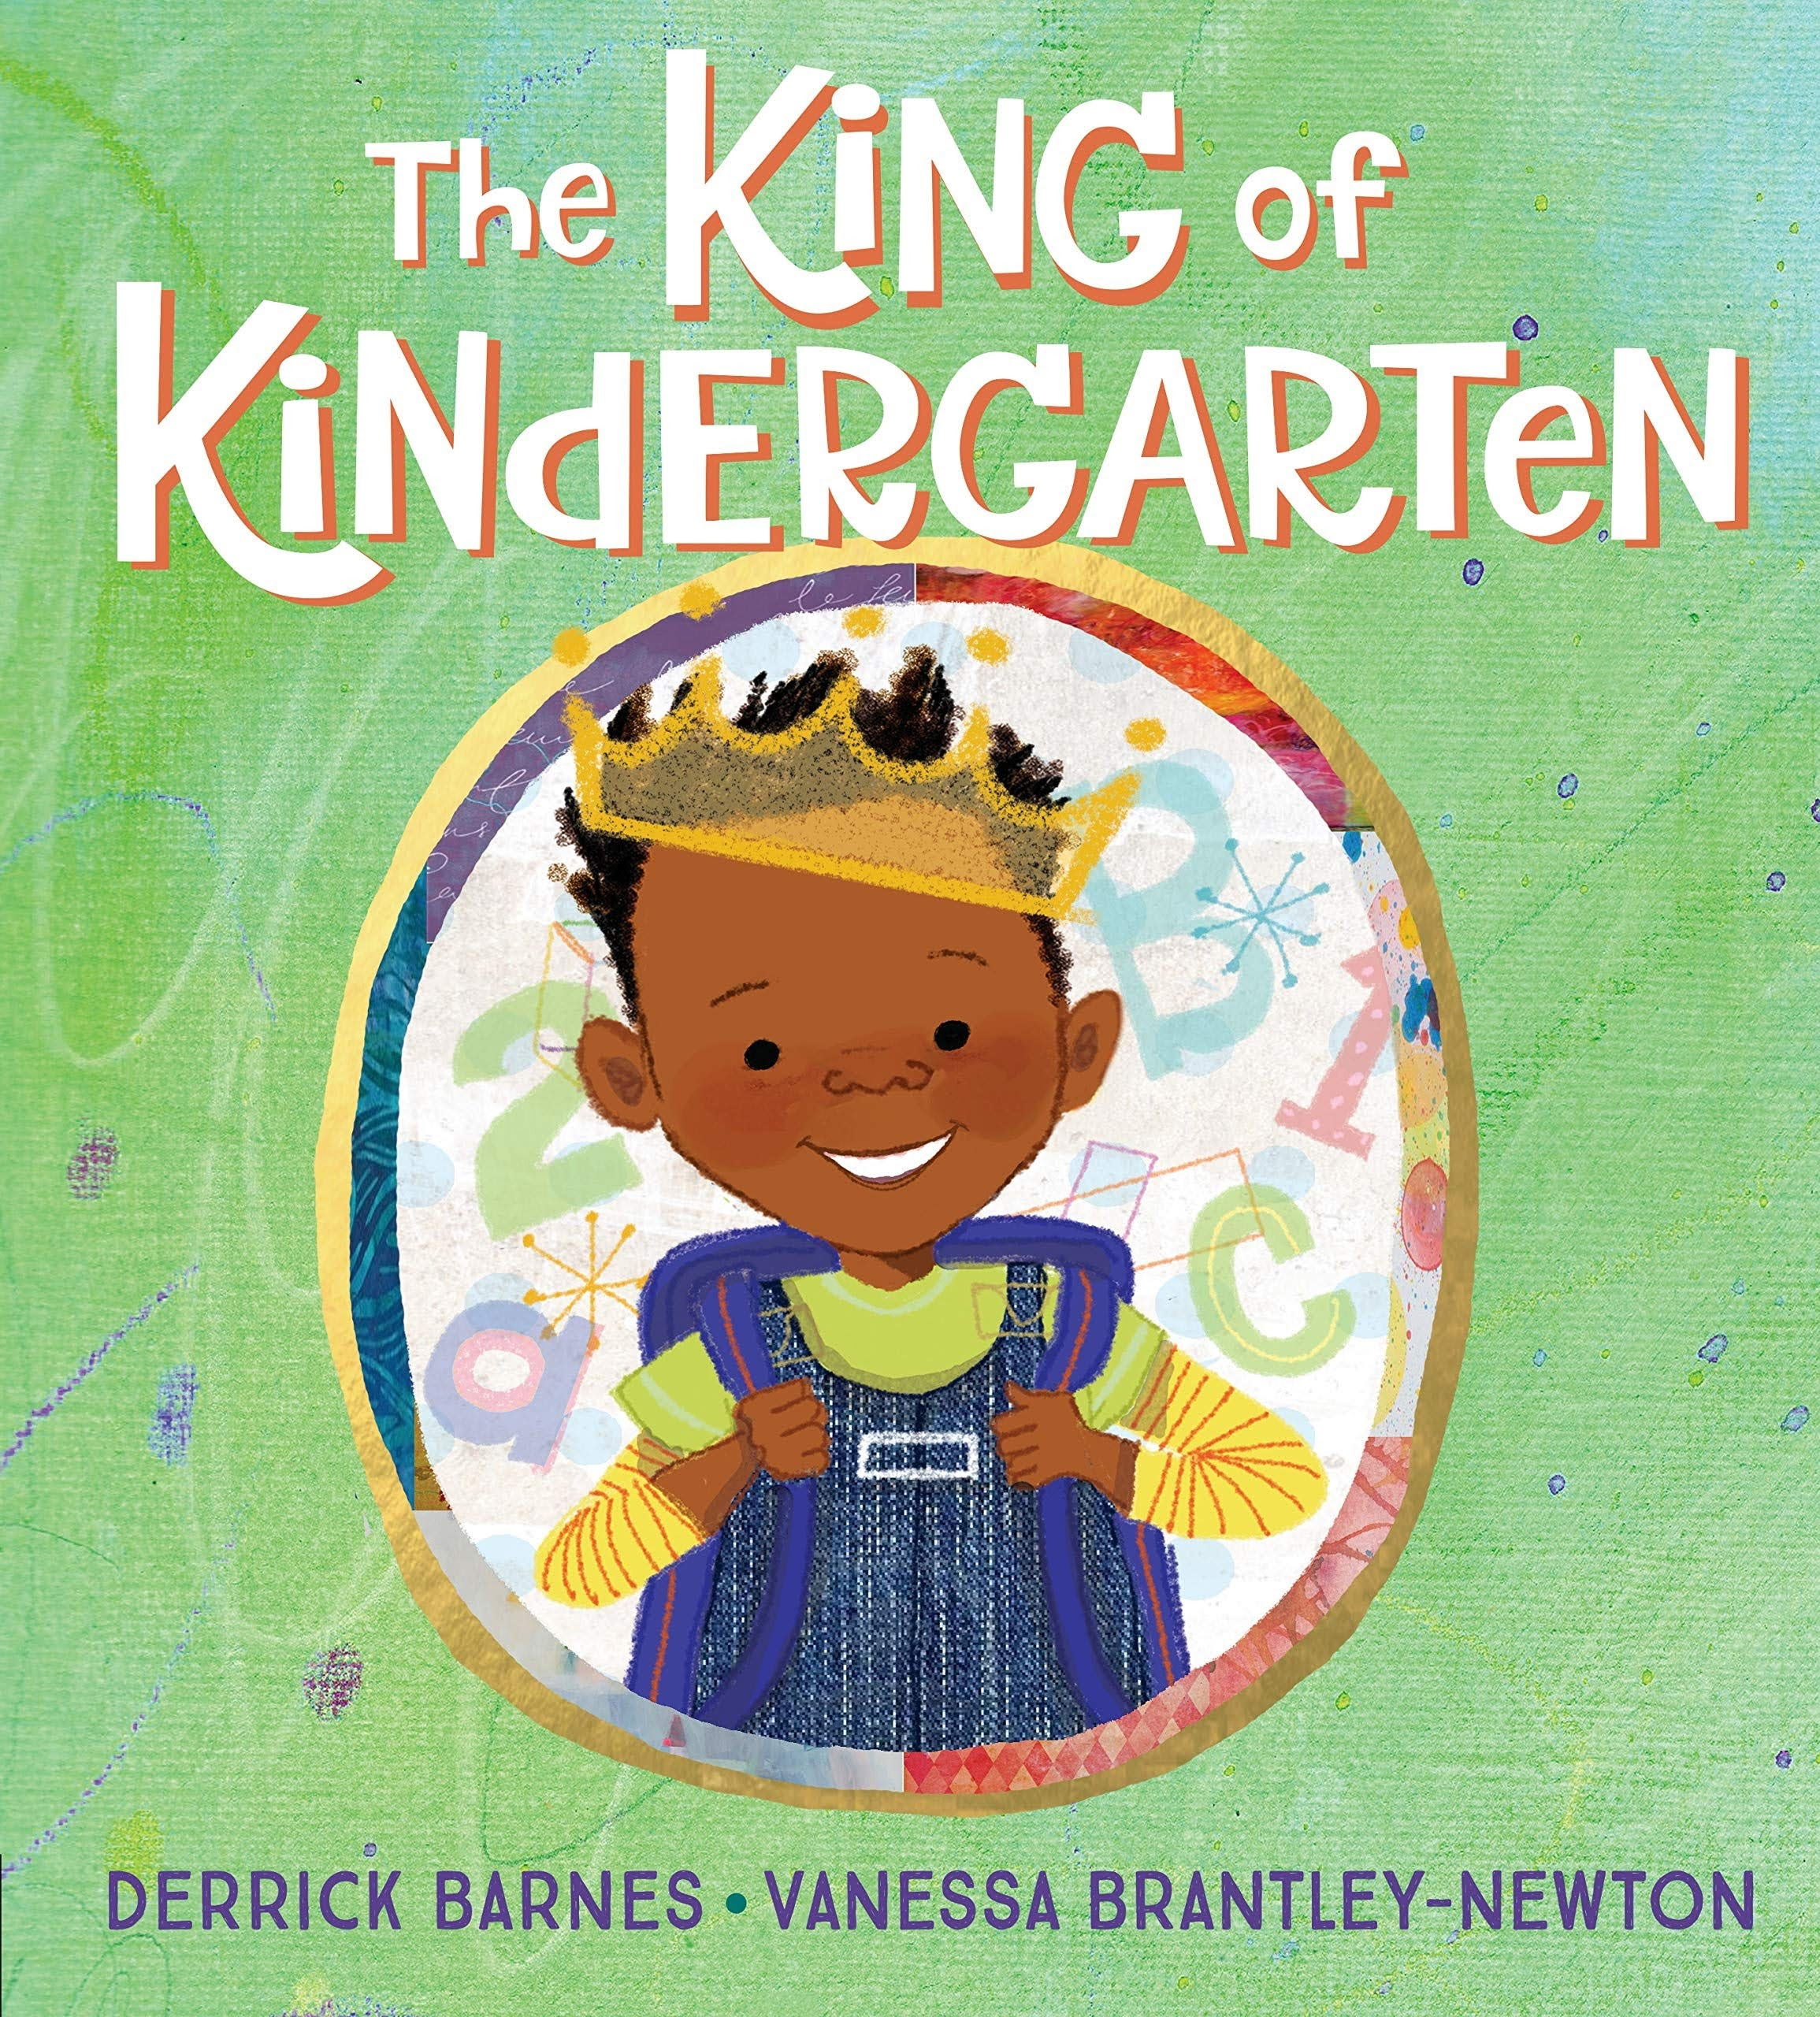 The King of Kindergarten by Derrick Barnes and illustrated by Vanessa Brantley-Newton